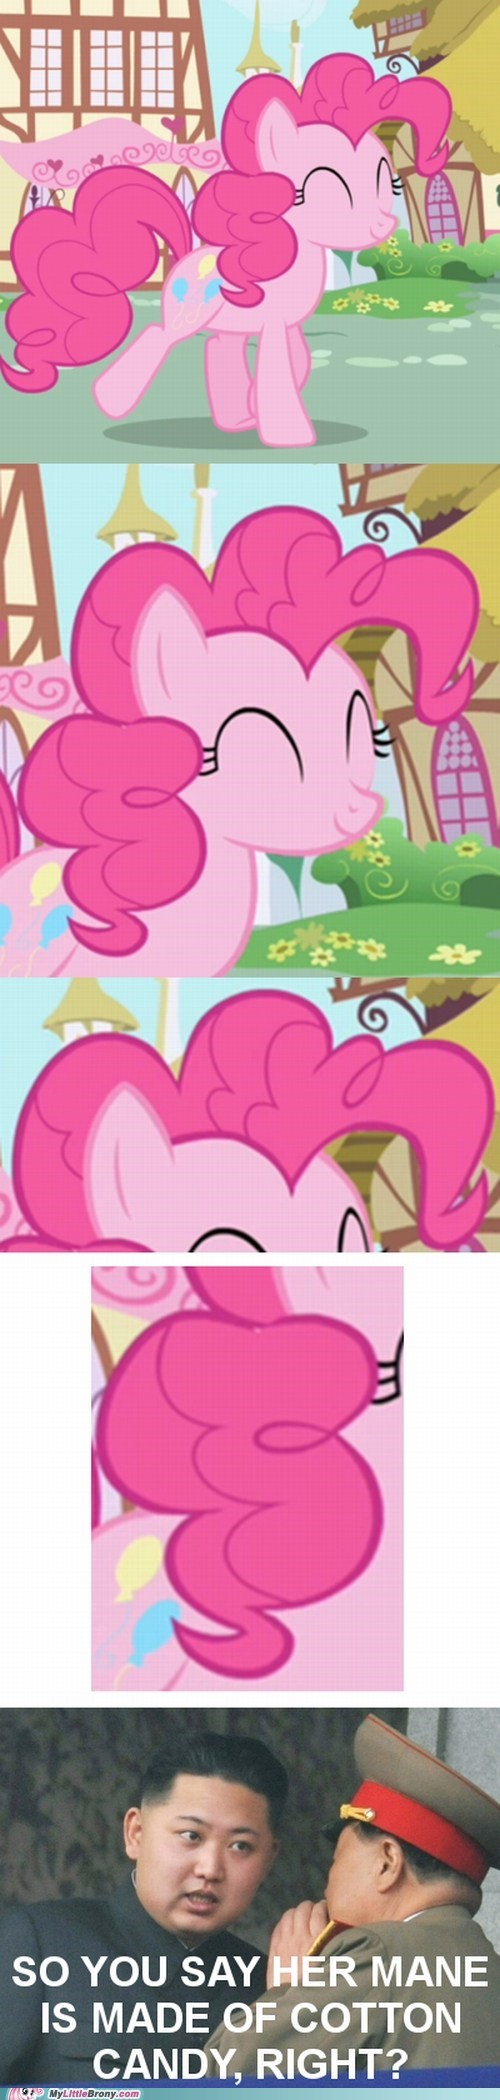 comic comics cotton candy kim jung-un meme pinkie pie - 6195864064